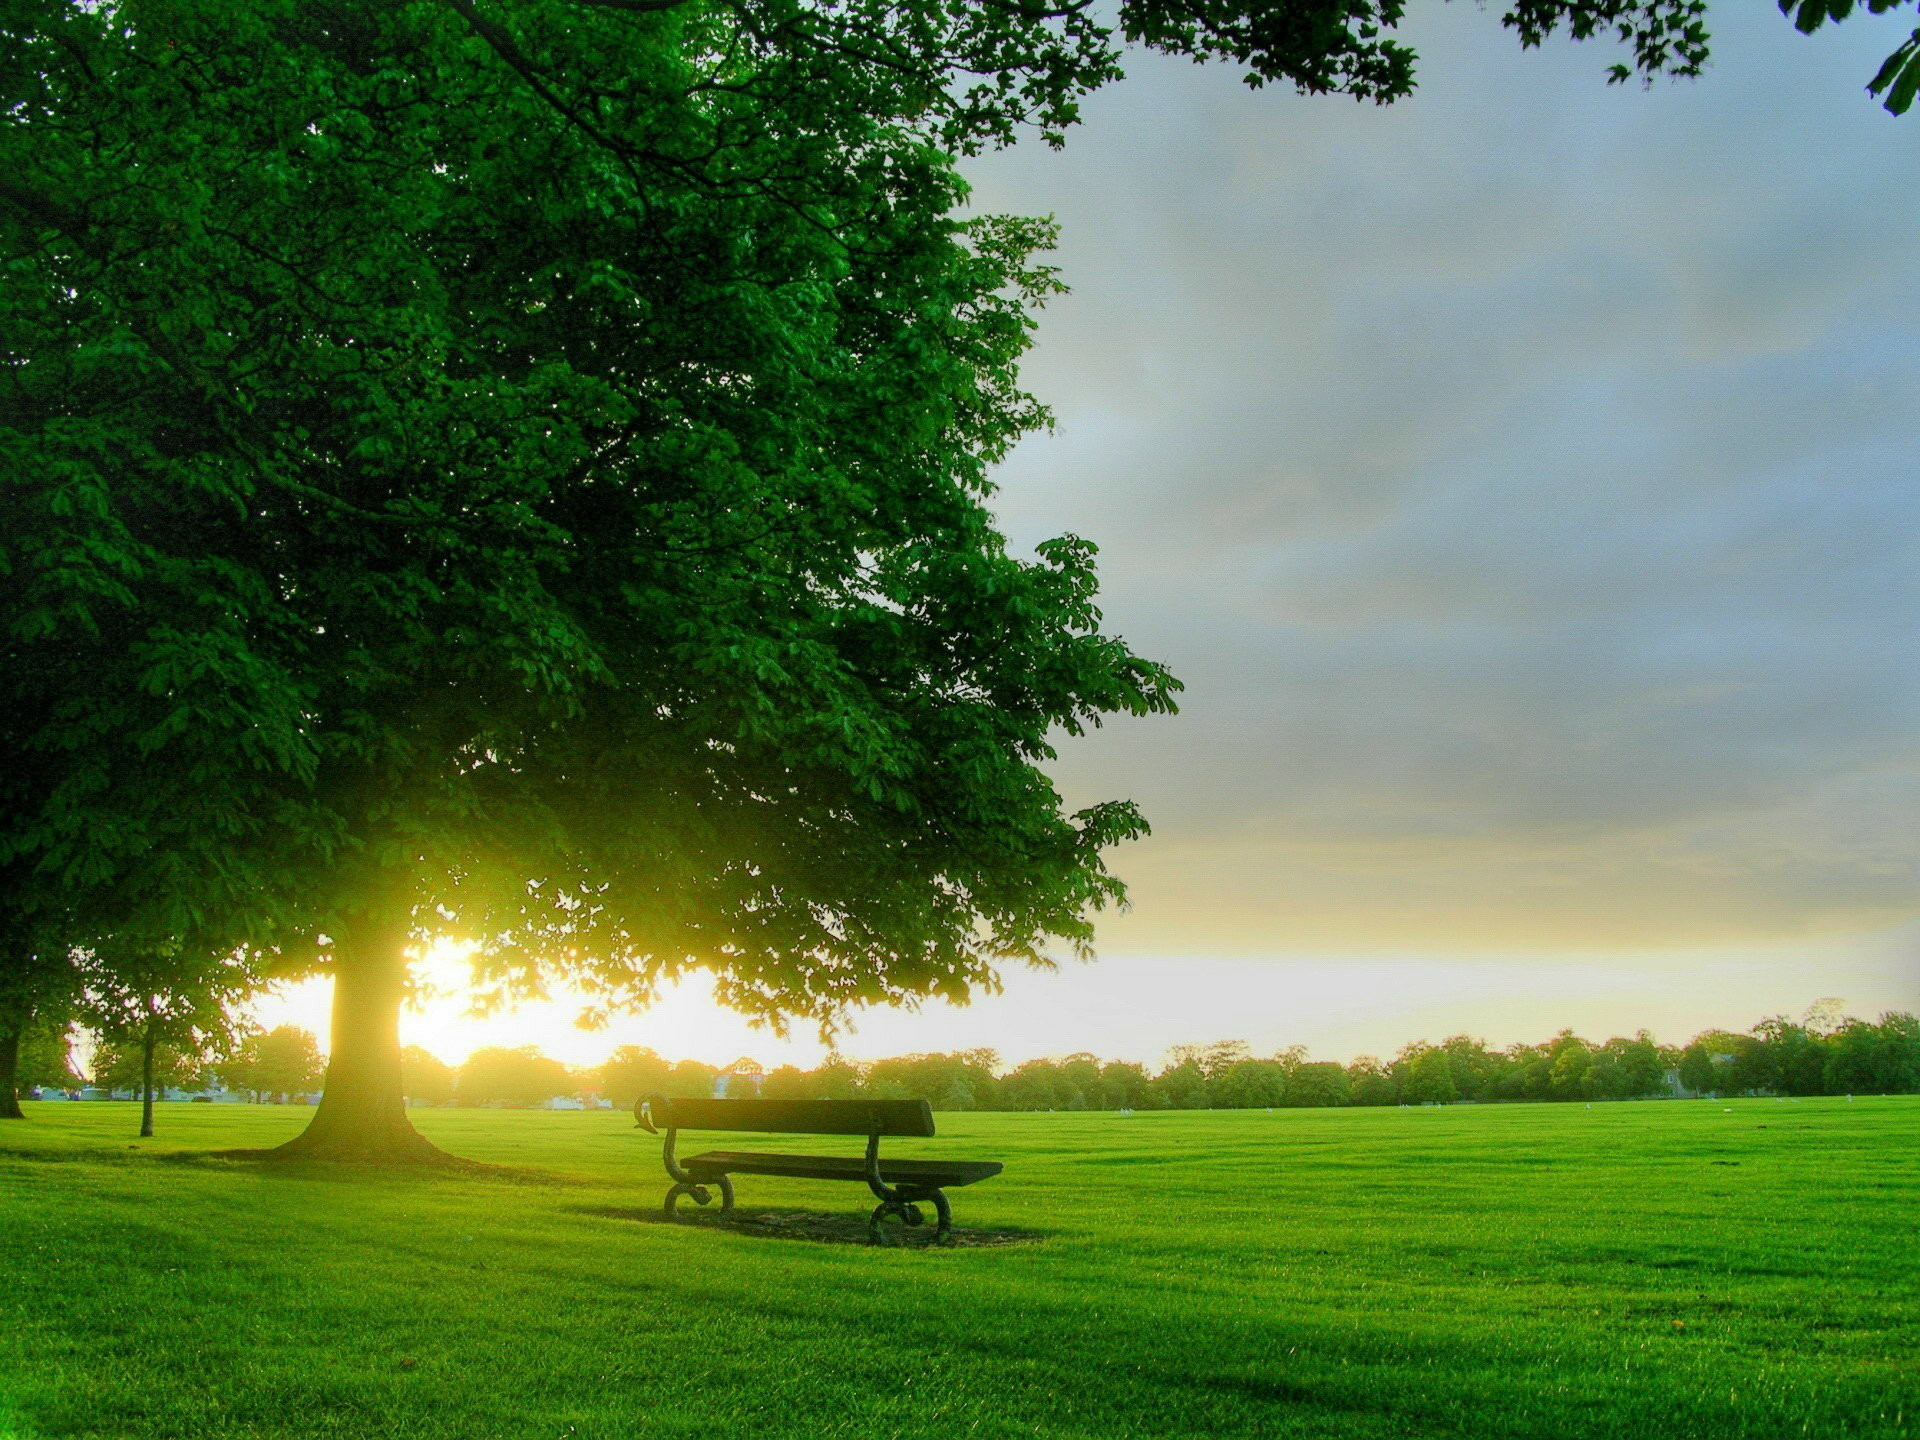 Morning Scenery HD Wallpapers: Find best latest Morning Scenery Wallpapers  in HD for your PC